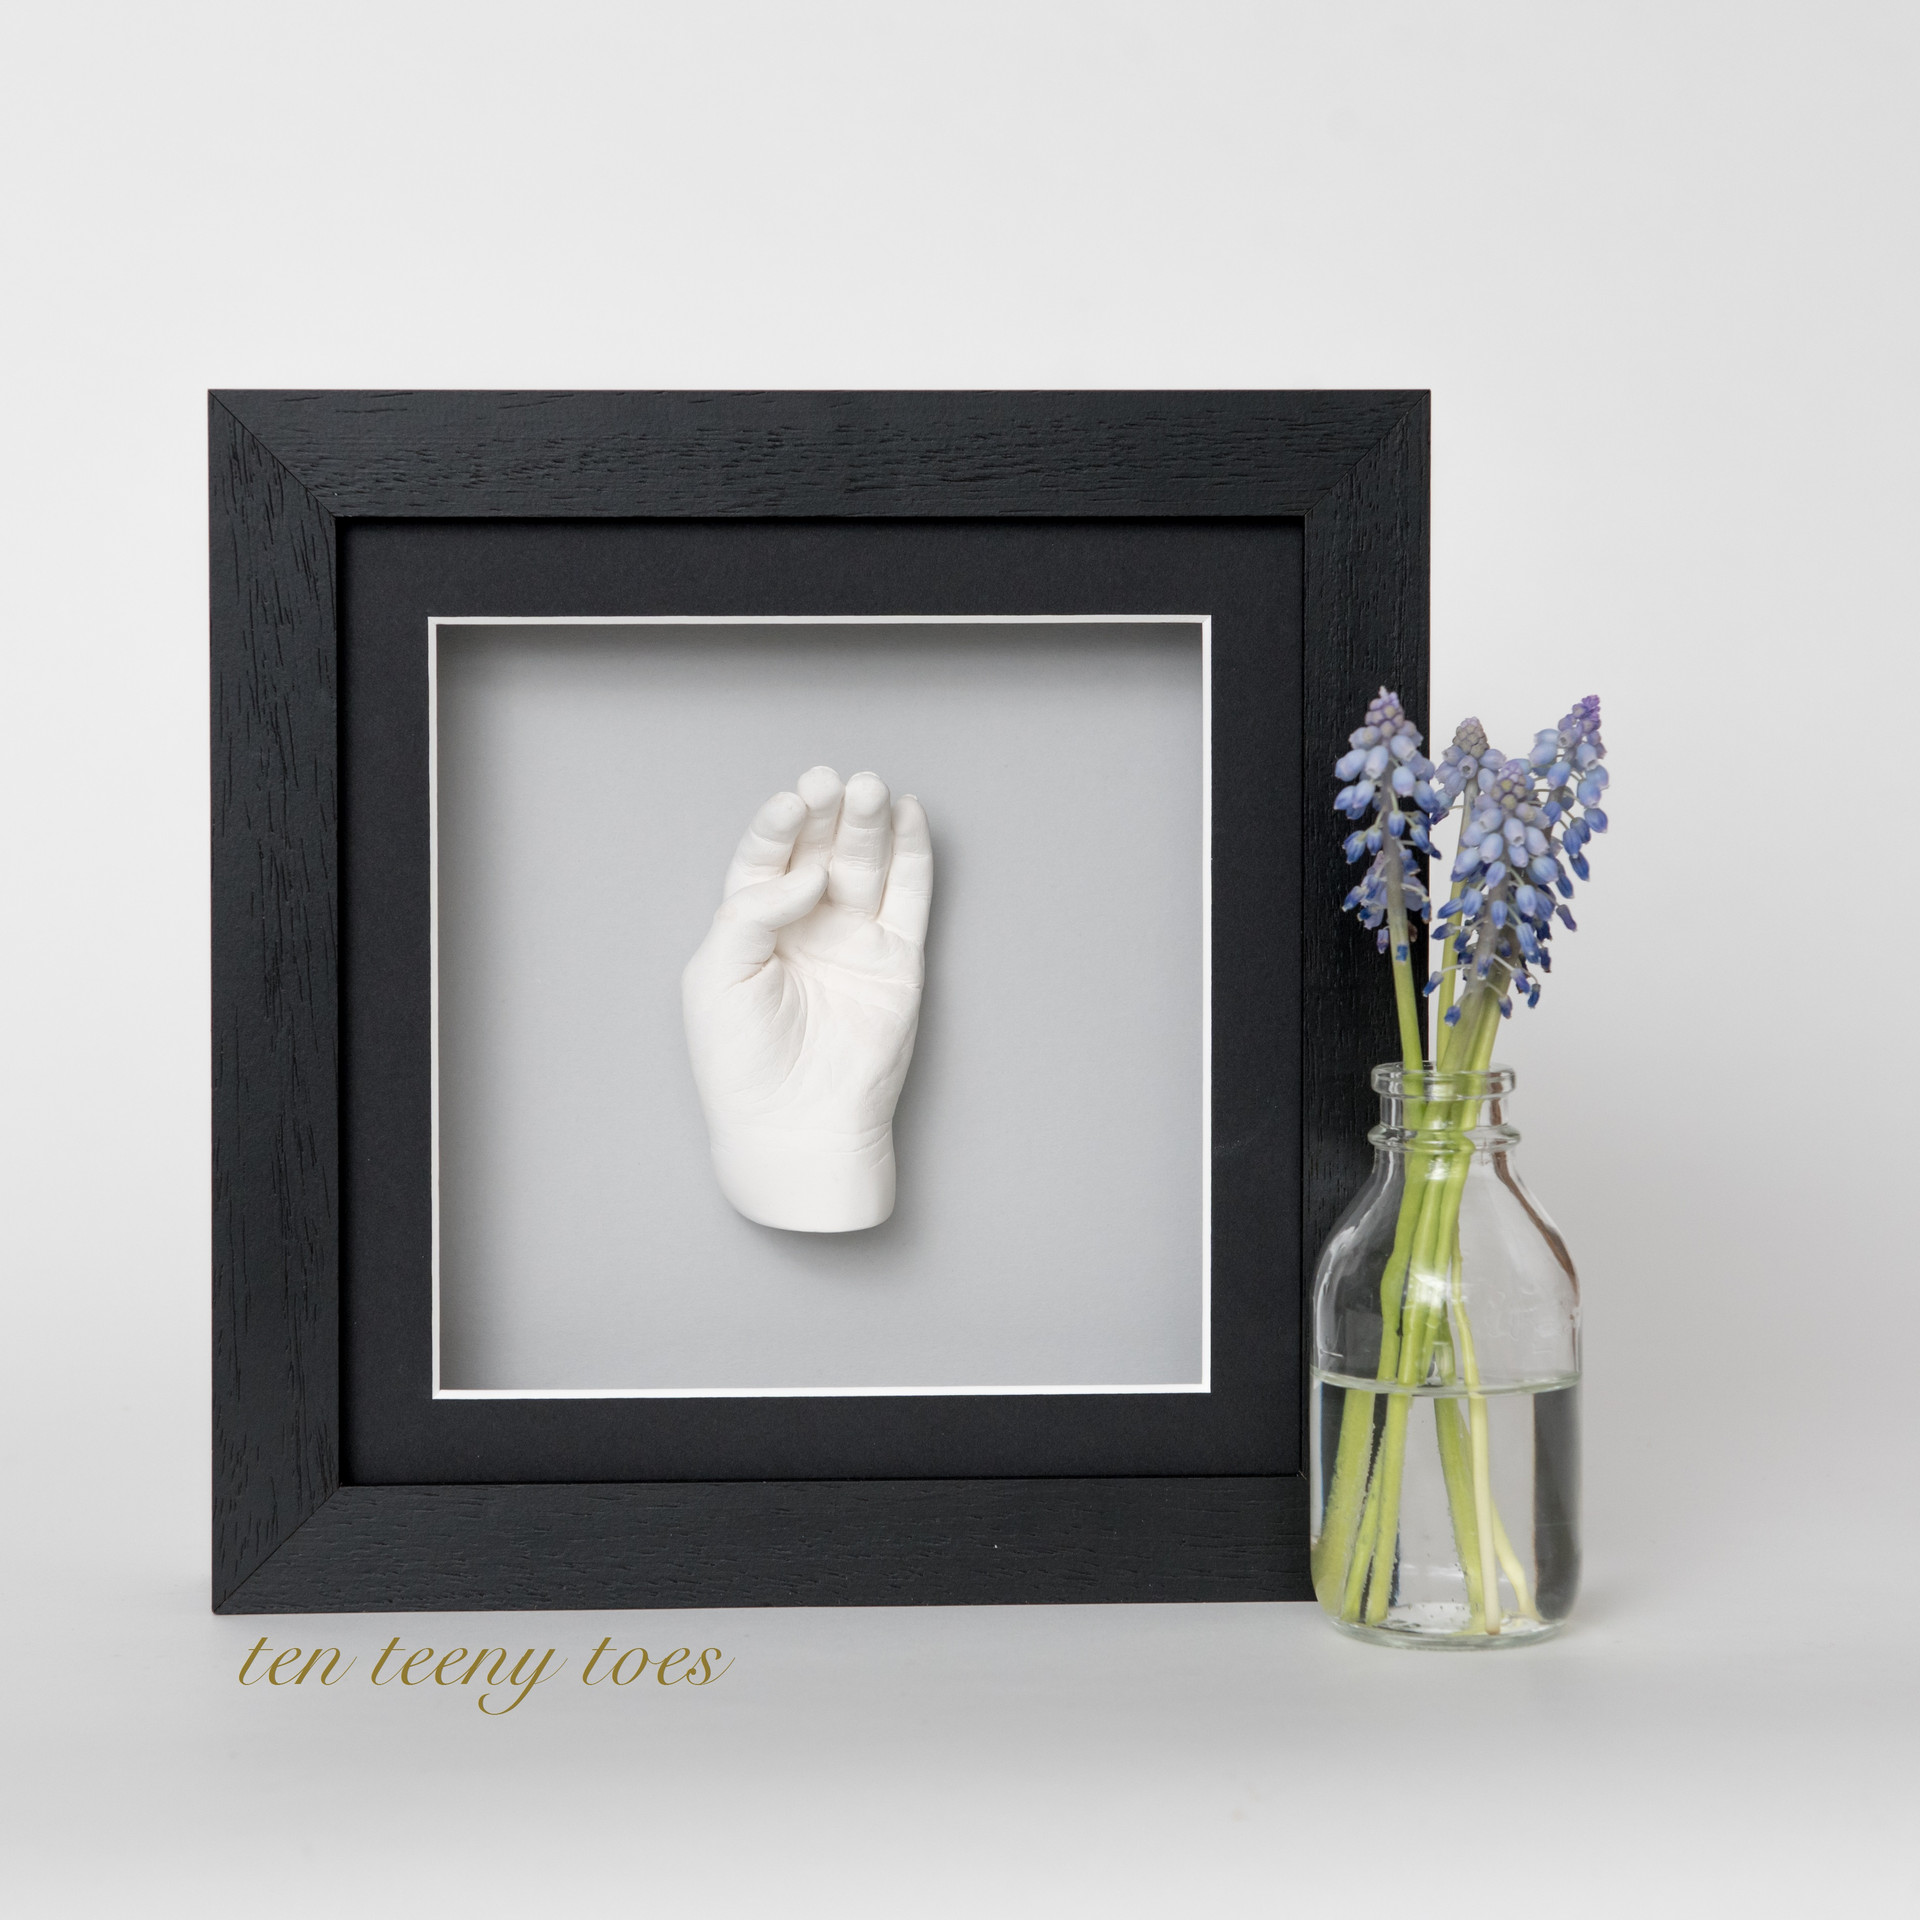 One two year old hand cast in a black contemporary frame.